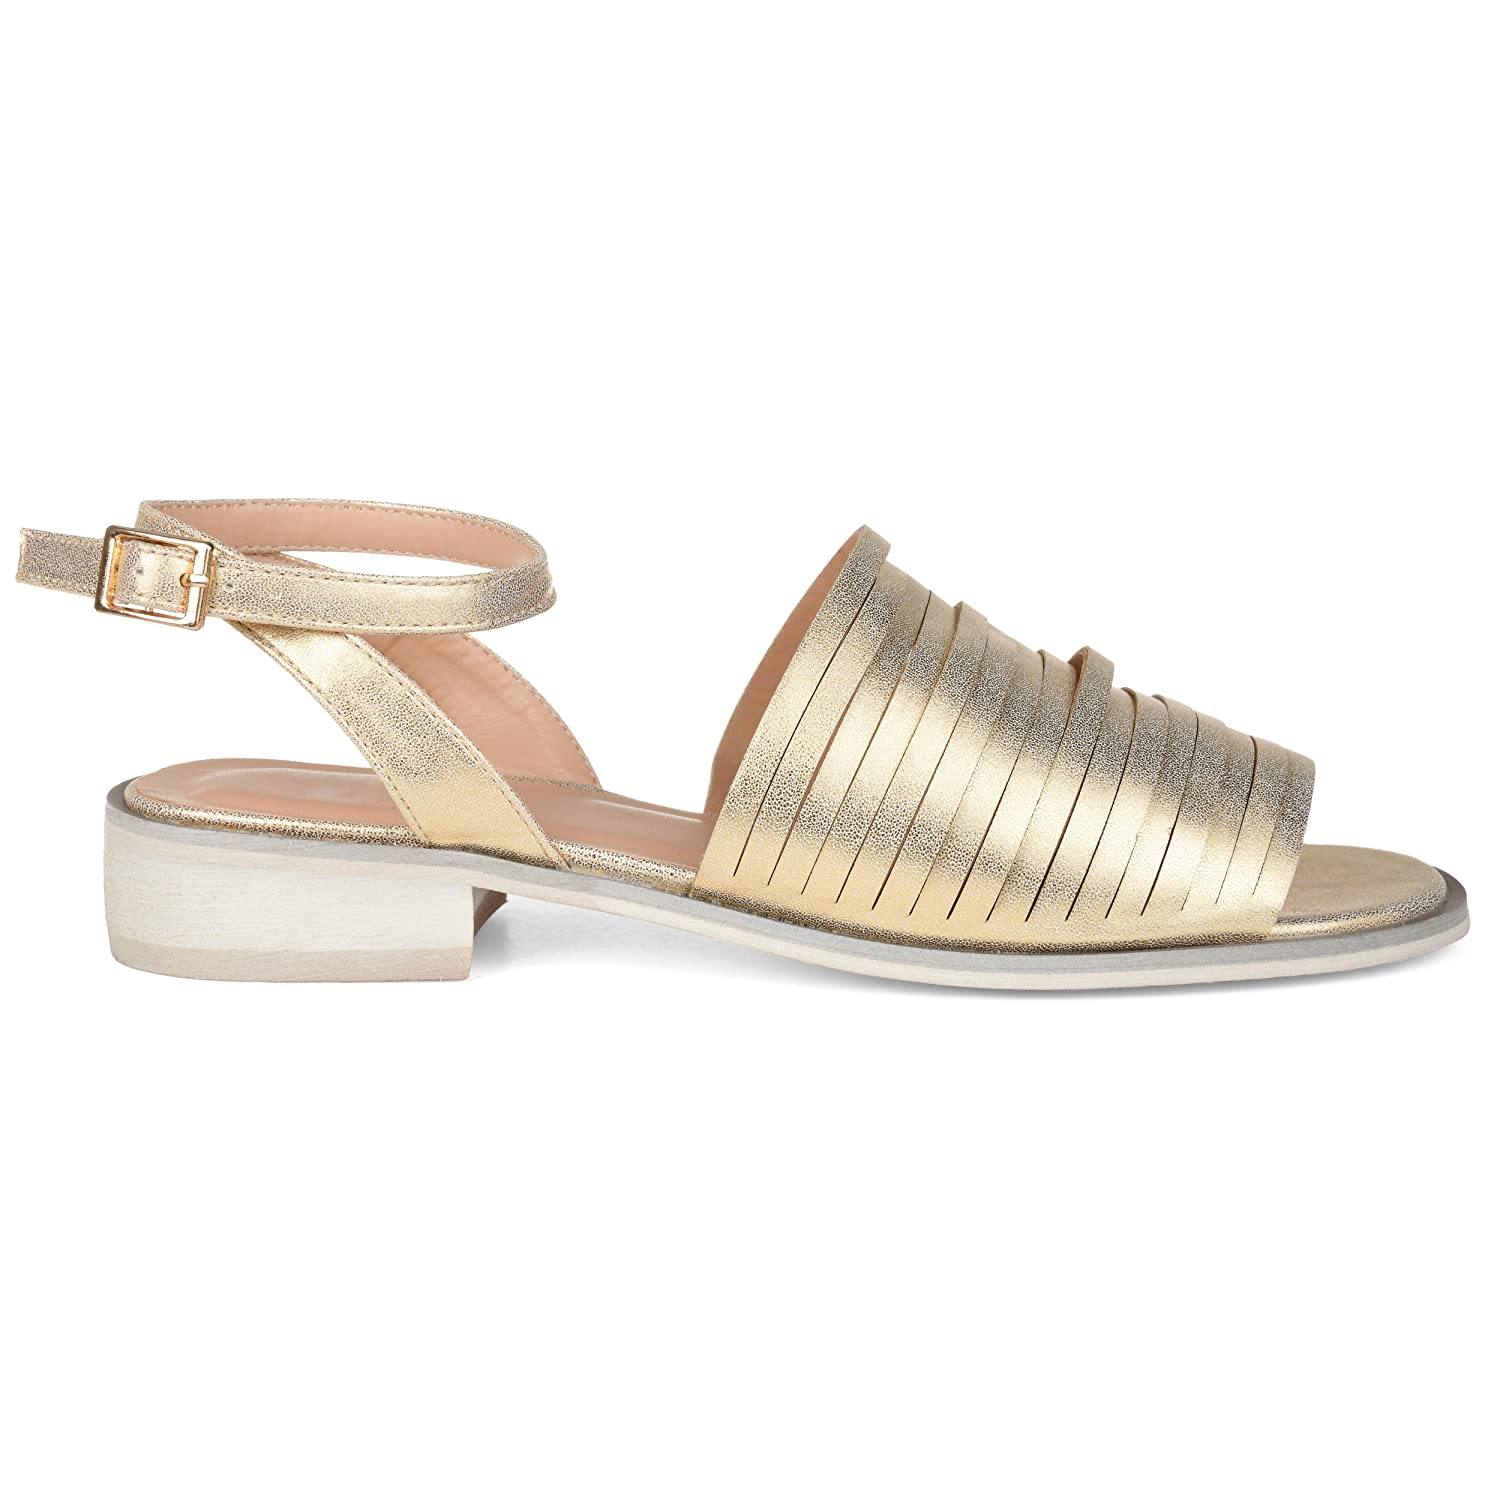 3fad93066 Womens Ankle Strap Casual Flat Sandal